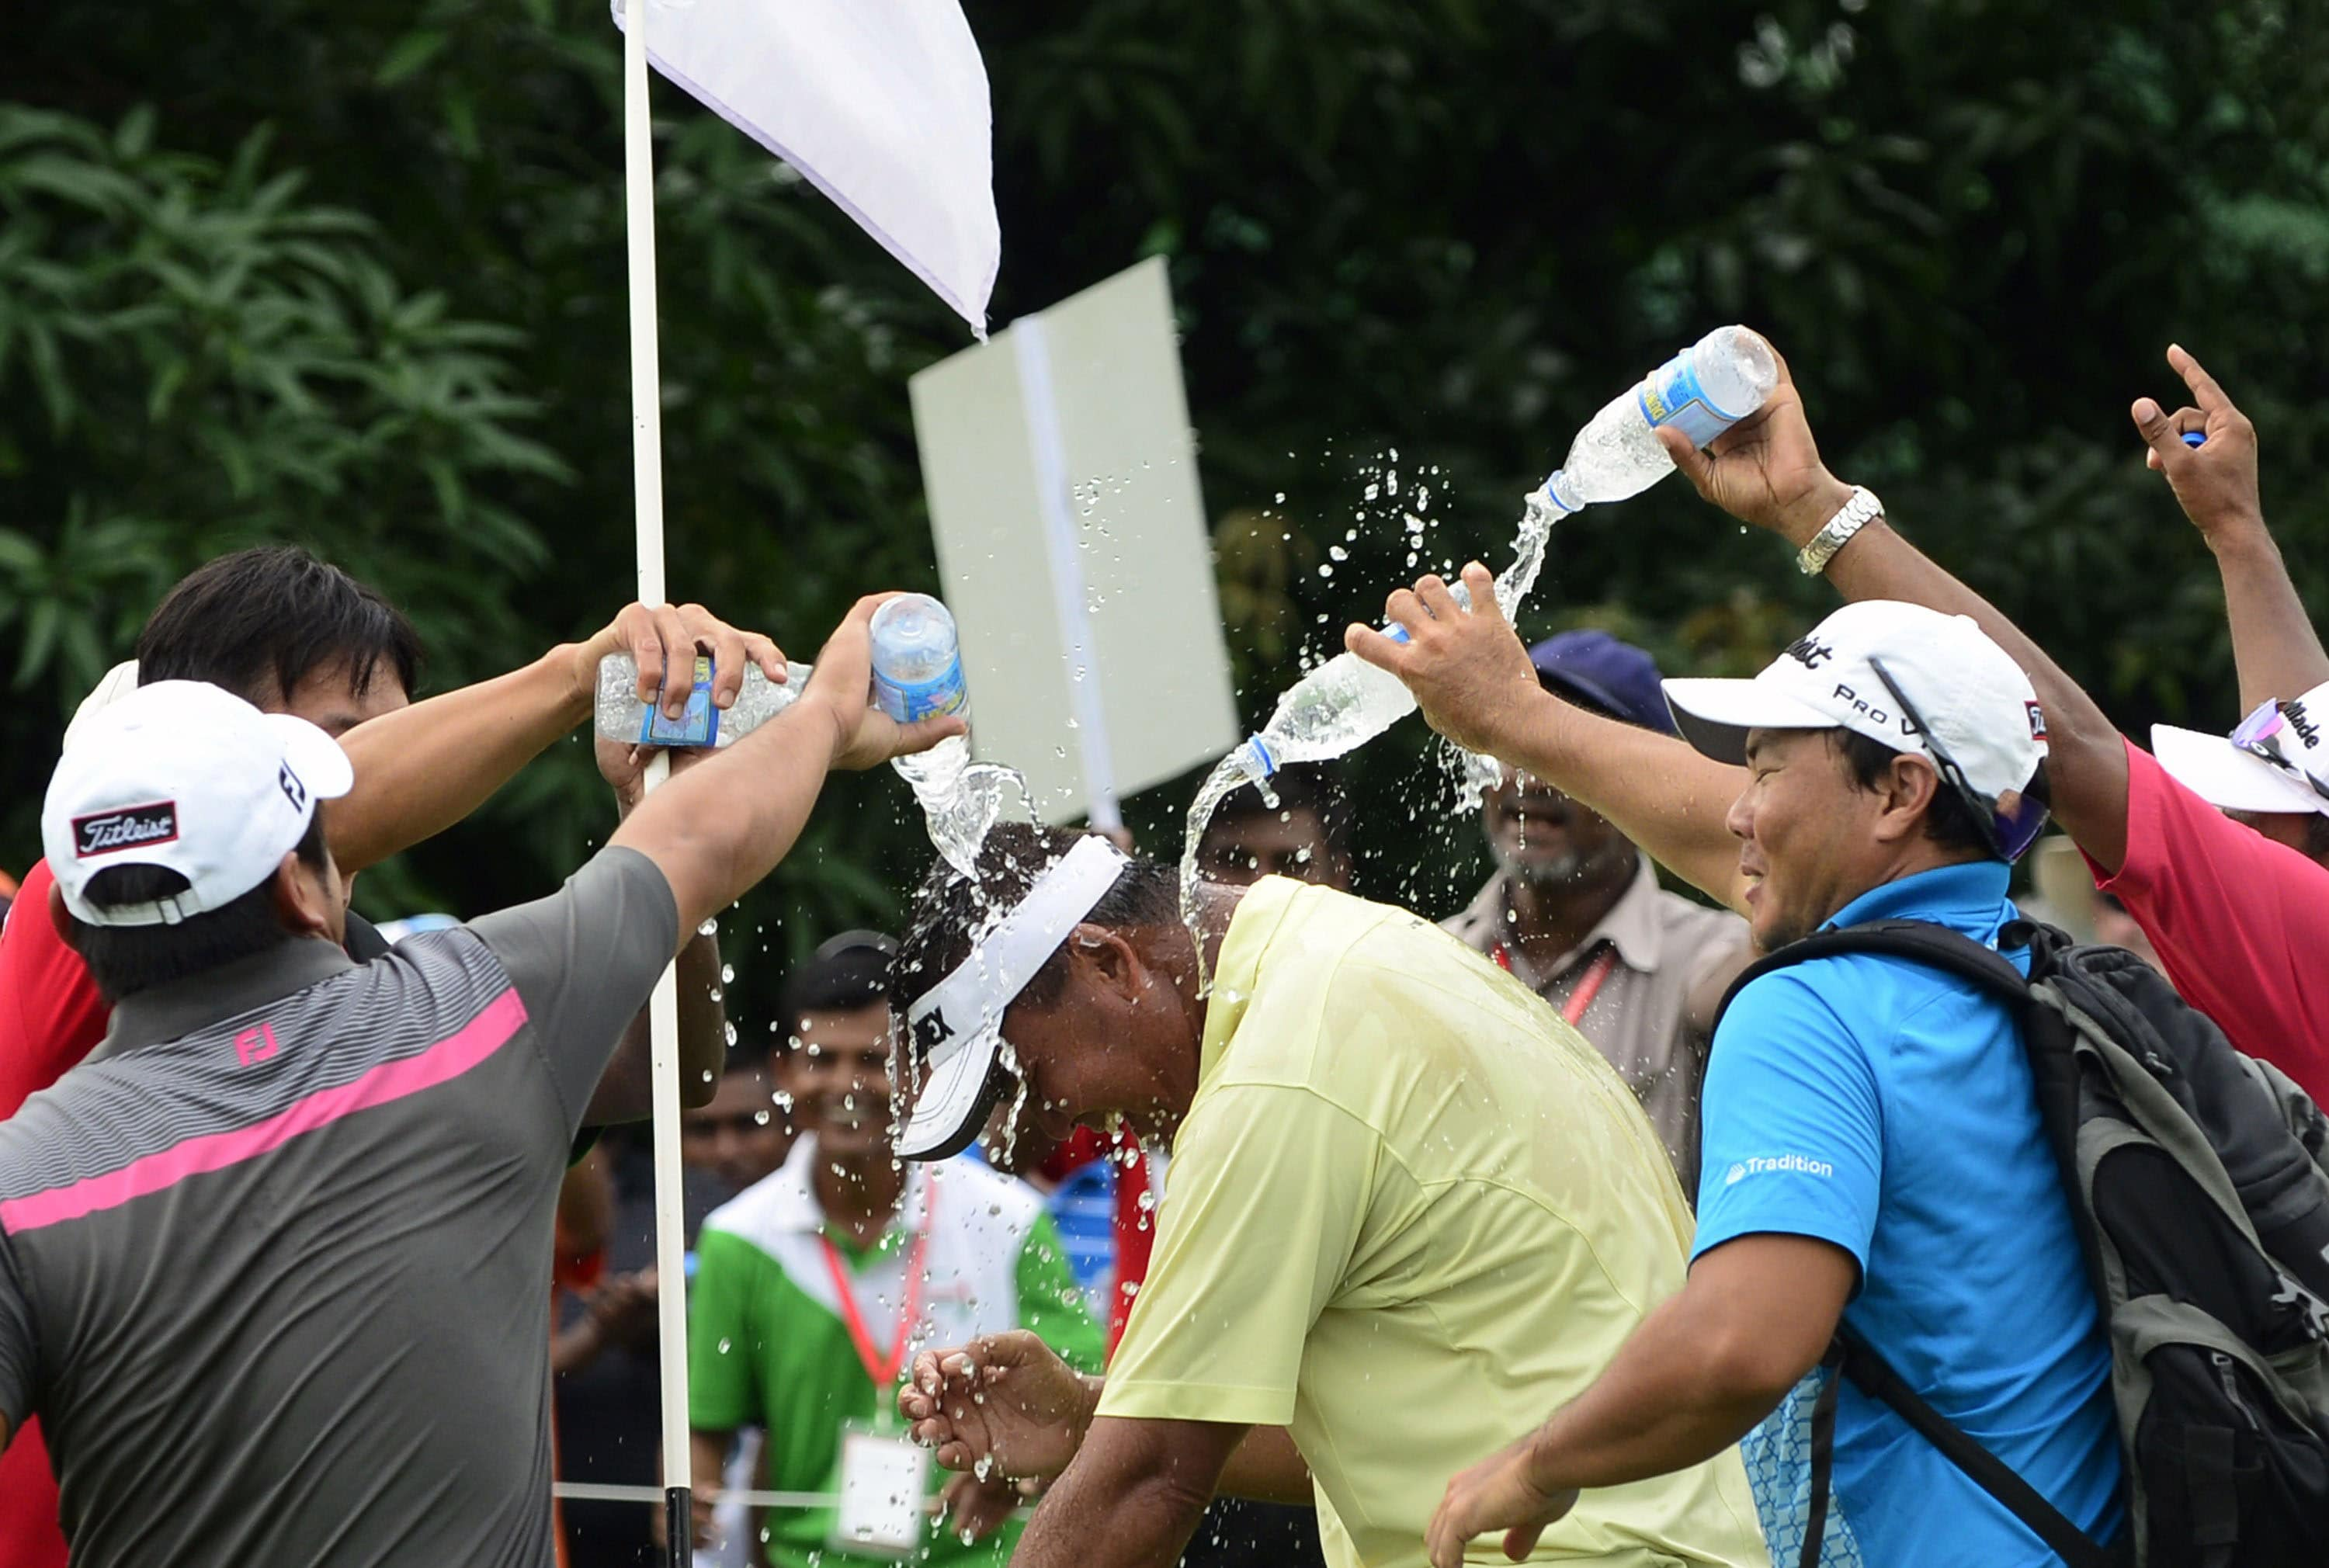 How come PGA Tour players don't celebrate this way?